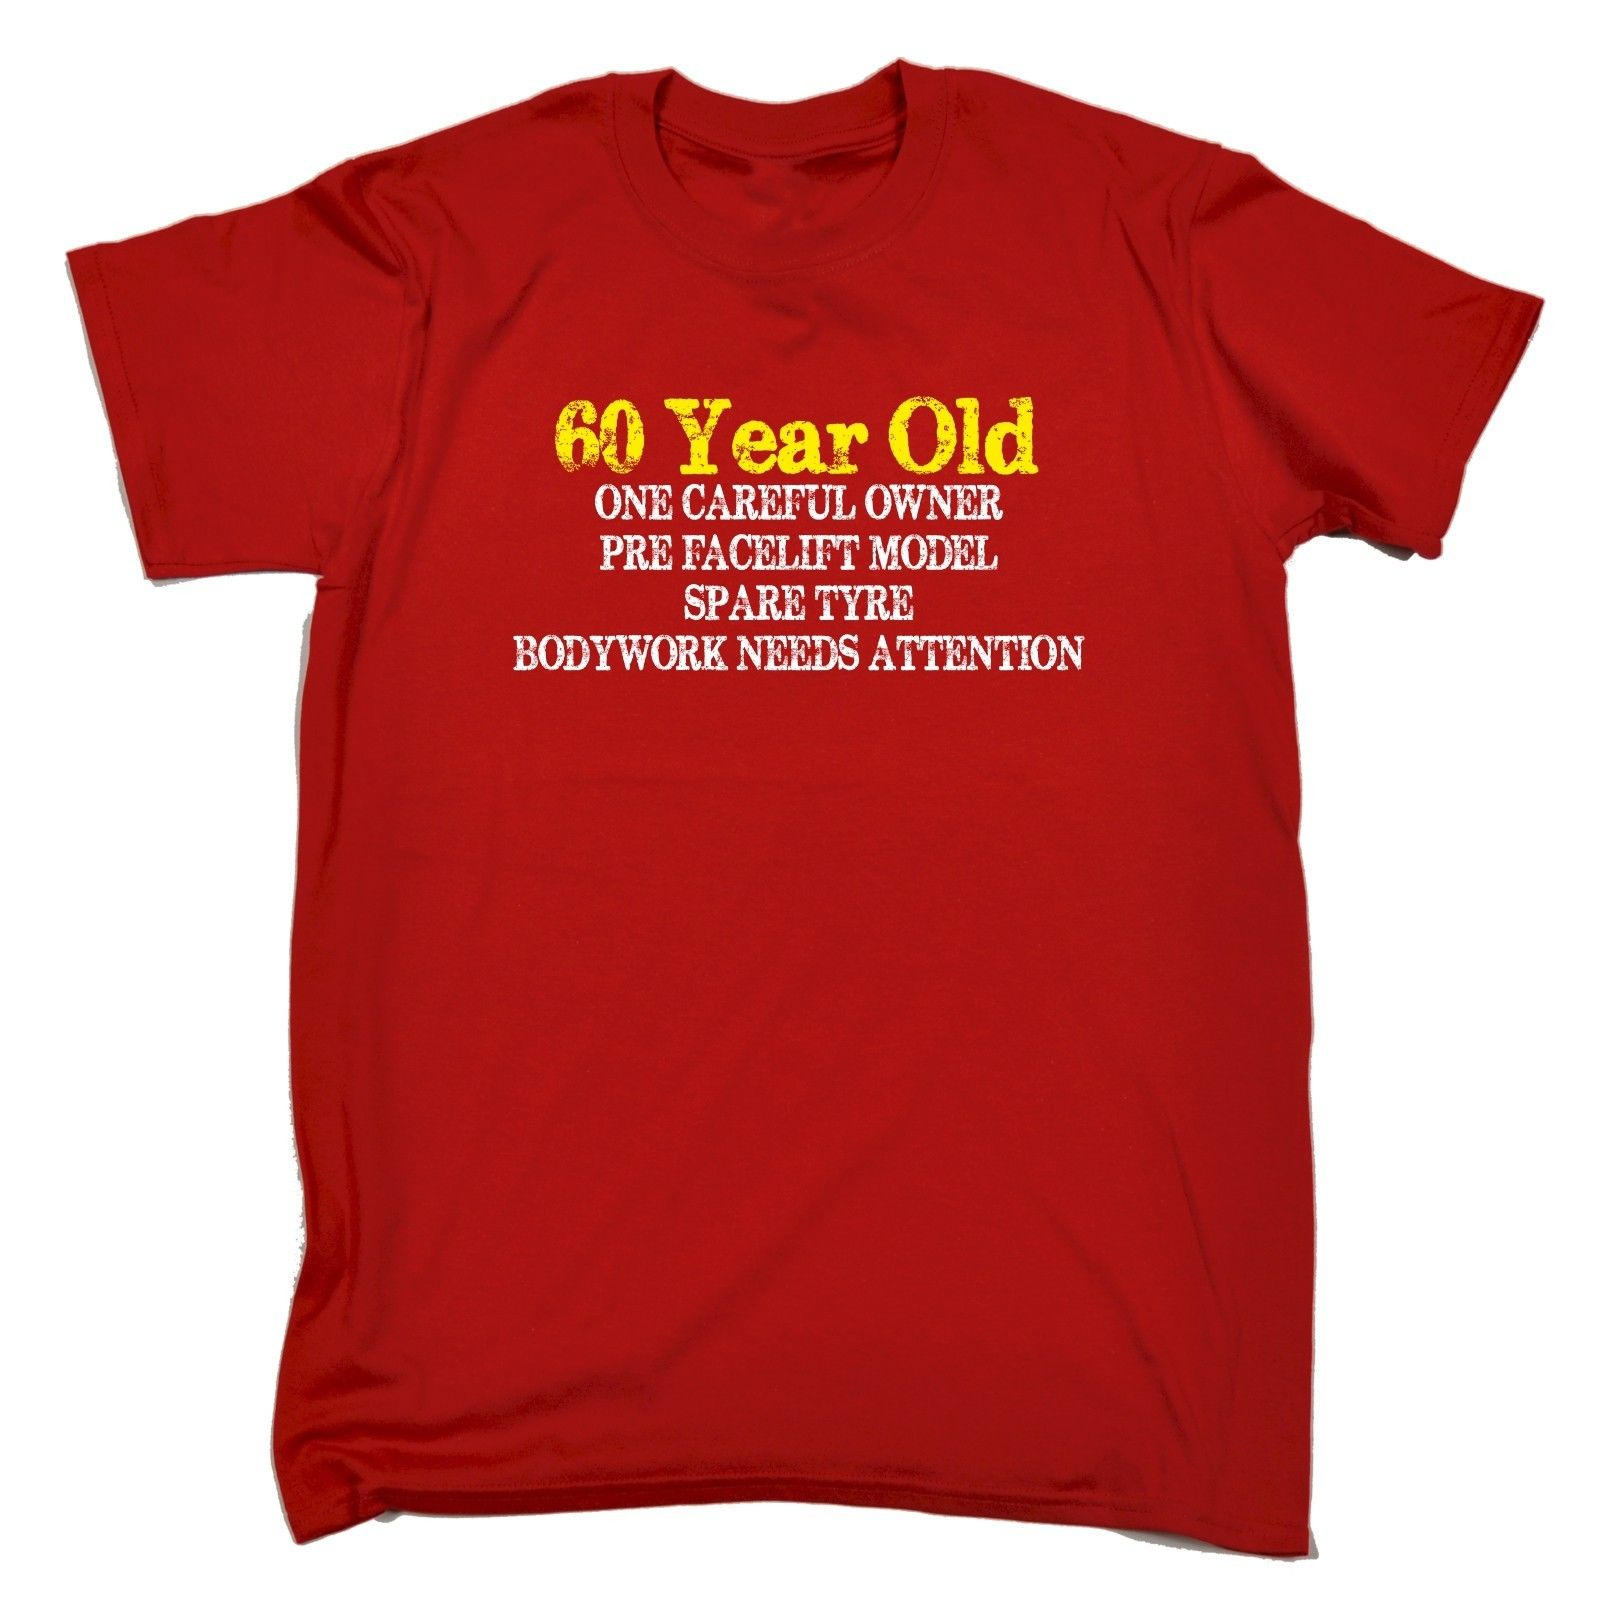 60 Year Old One Careful Owner T SHIRT Tee 60th Dad Grandad Funny Birthday Gift Shirt O Neck Fashion Casual High Quality In Shirts From Mens Clothing On